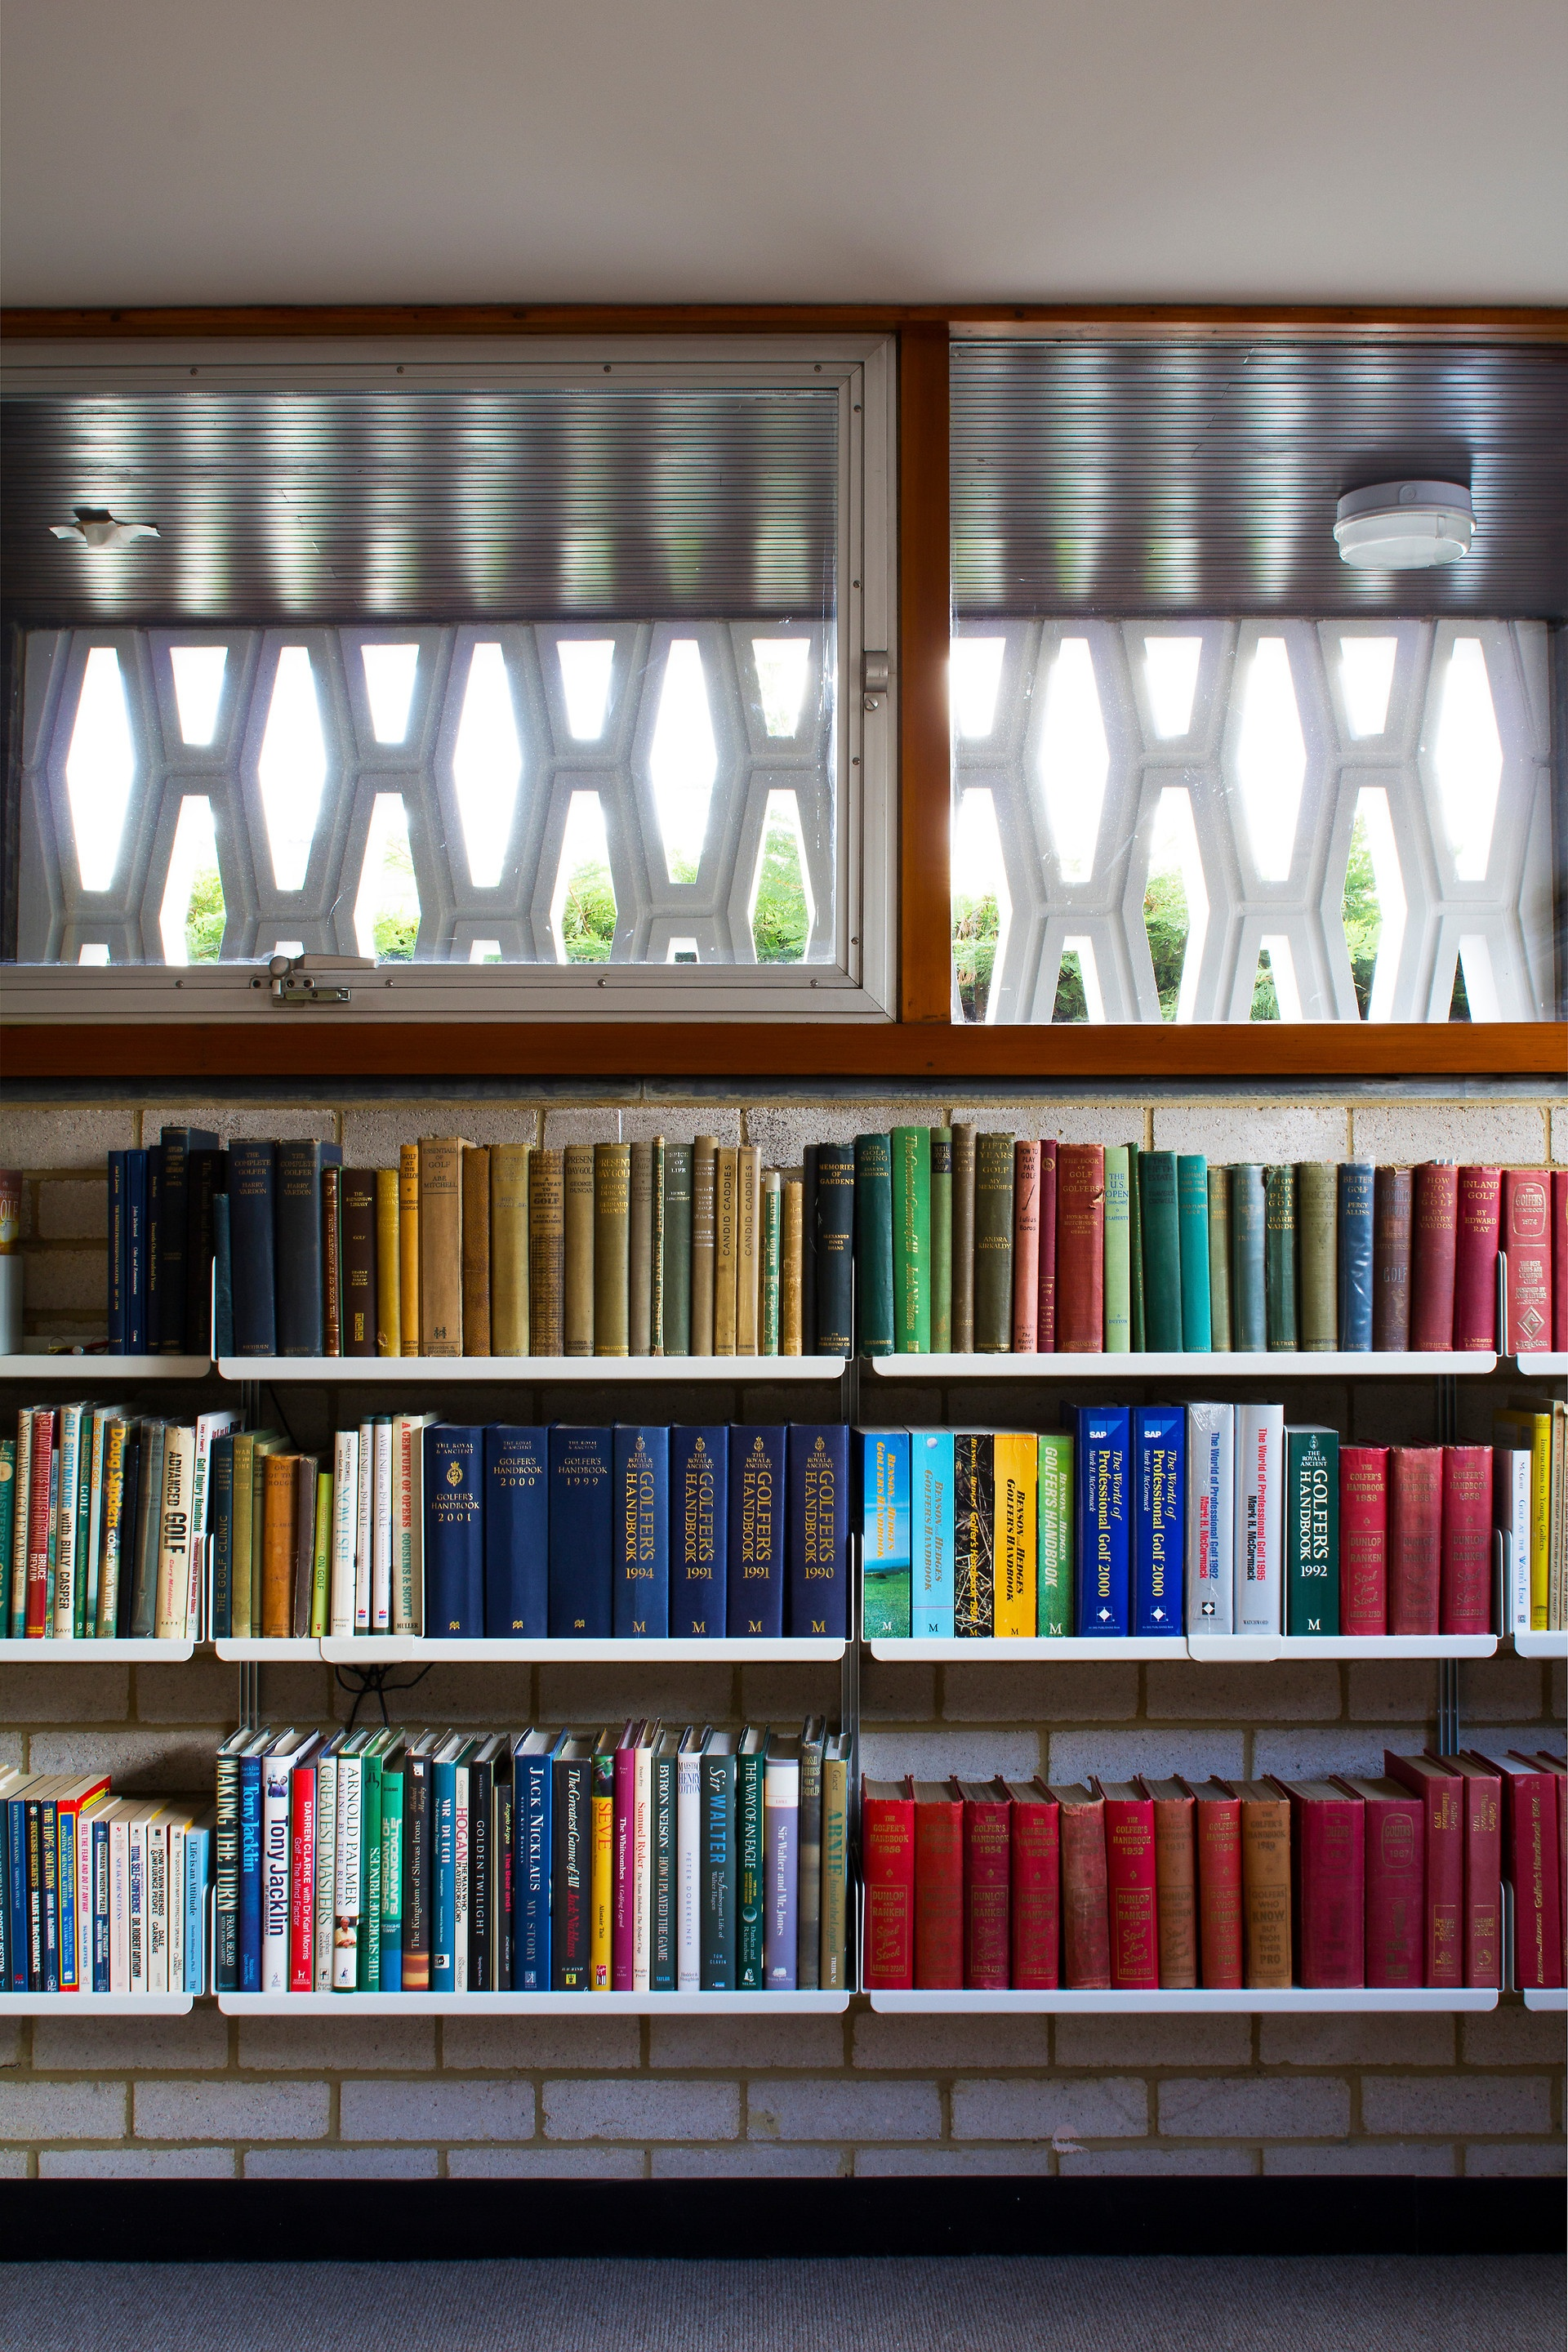 A bookish bunker with the 606 Universal Shelving System wall-mounted on exposed brickwork. Apt